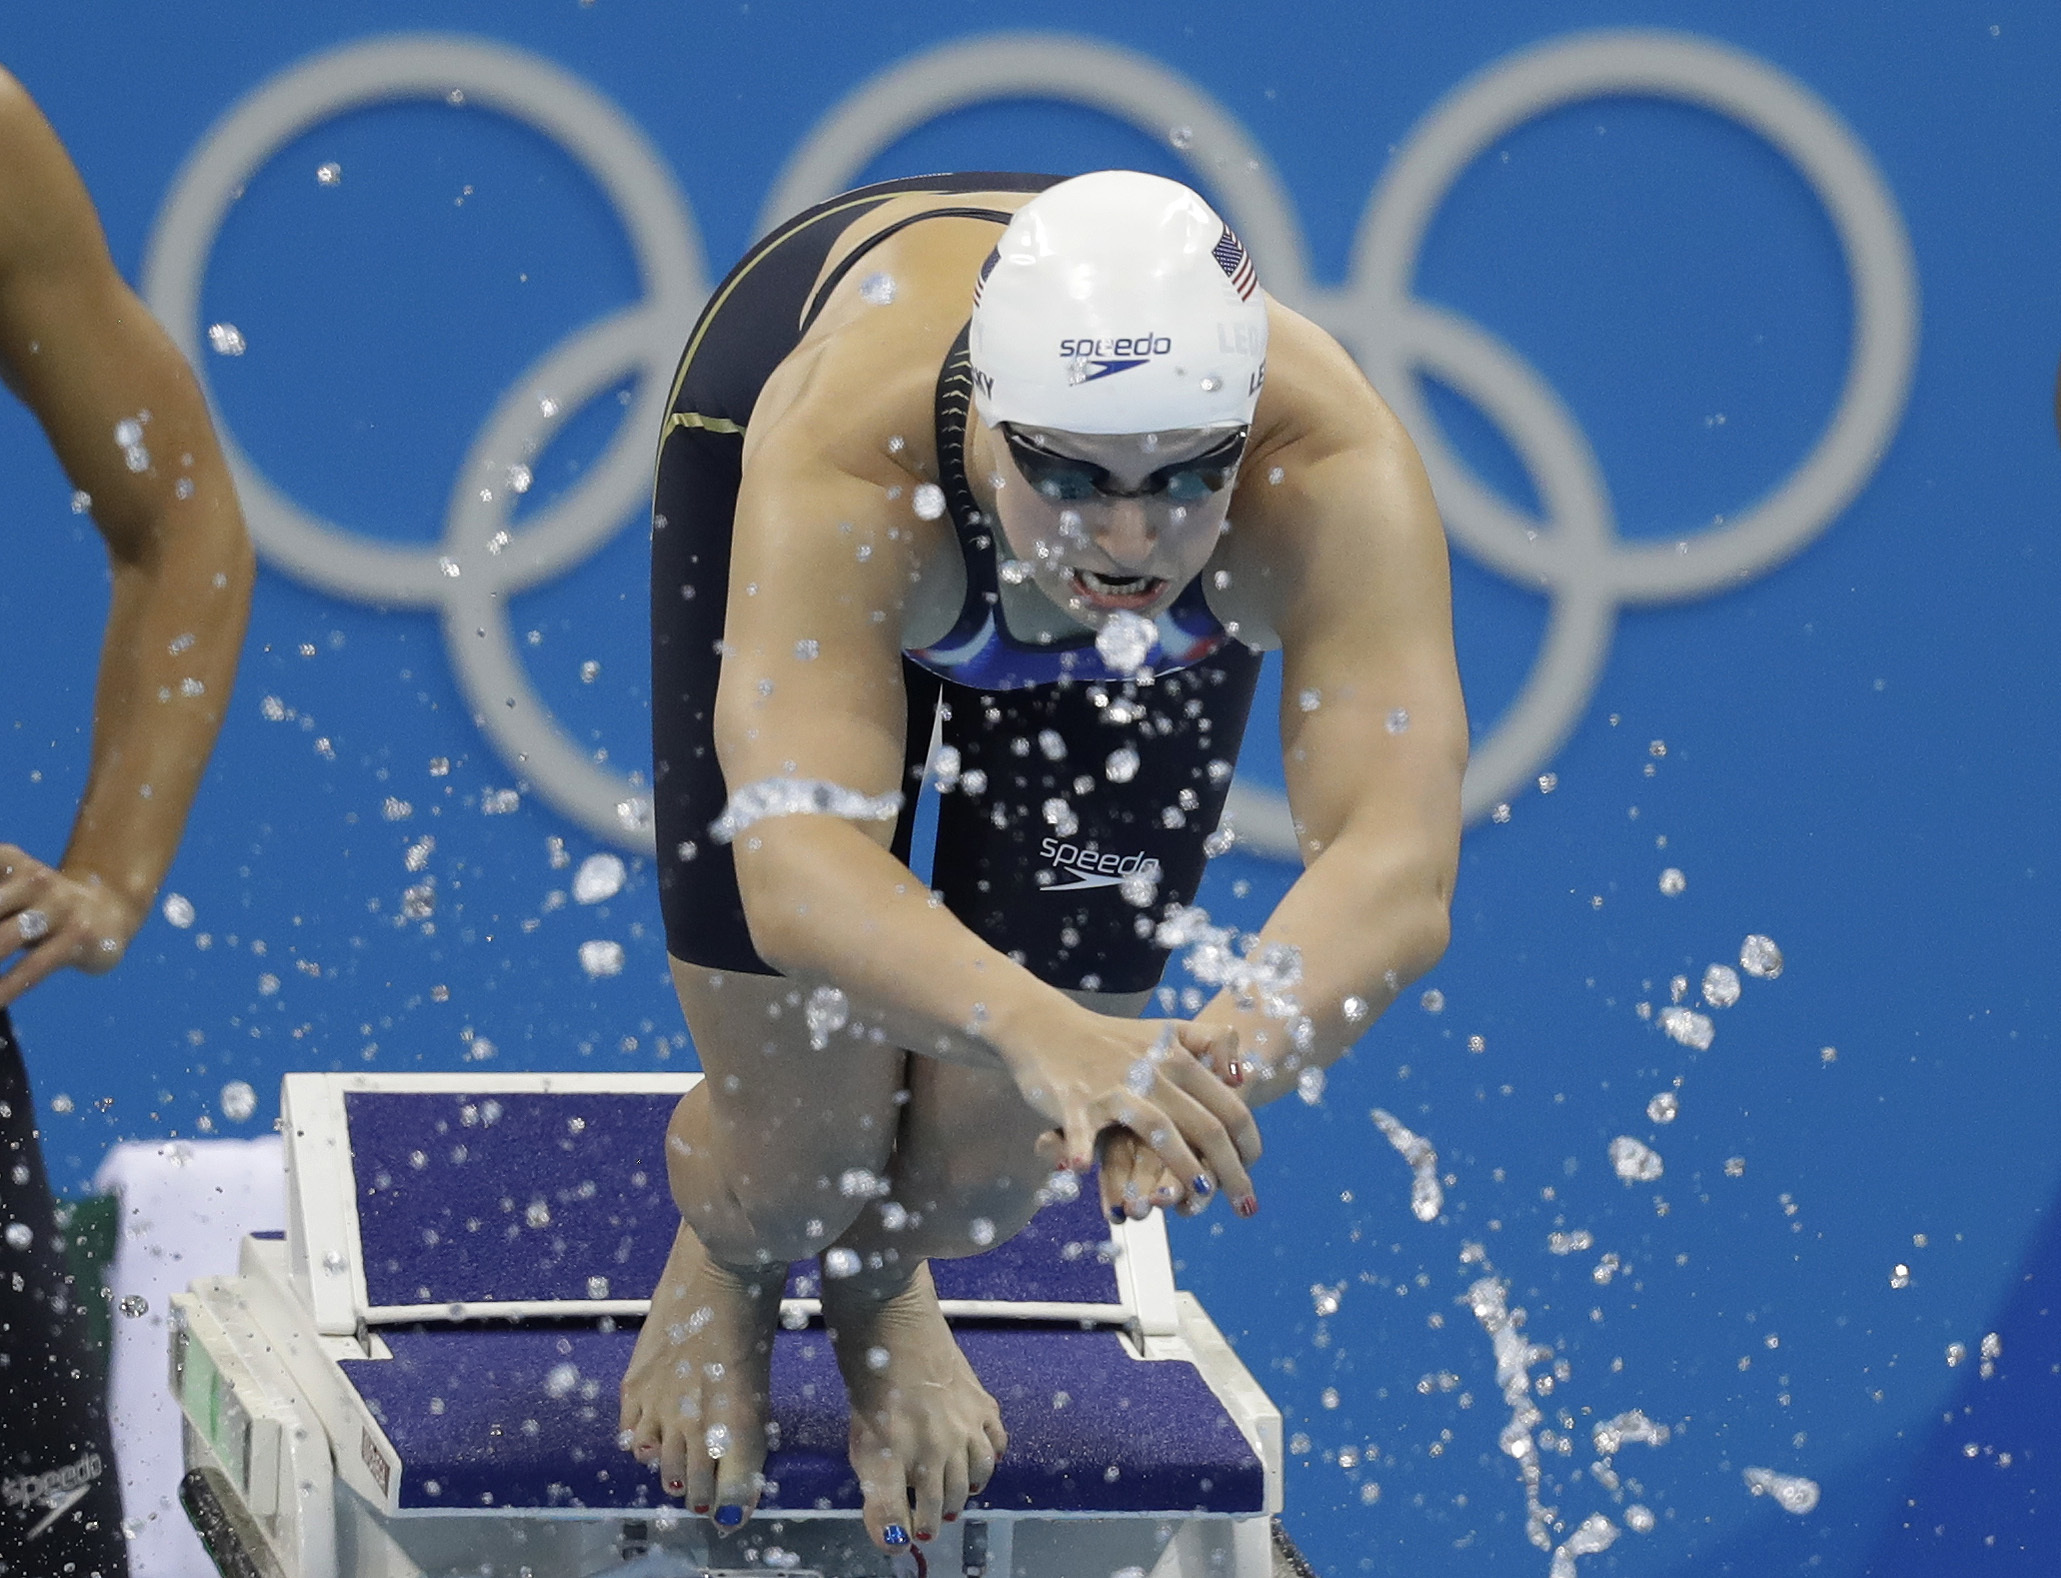 United States' Katie Ledecky starts her portion of a women's 4x100-meter freestyle relay heat during the swimming competitions at the 2016 Summer Olympics, Saturday, Aug. 6, 2016, in Rio de Janeiro, Brazil. (AP Photo/Michael Sohn)